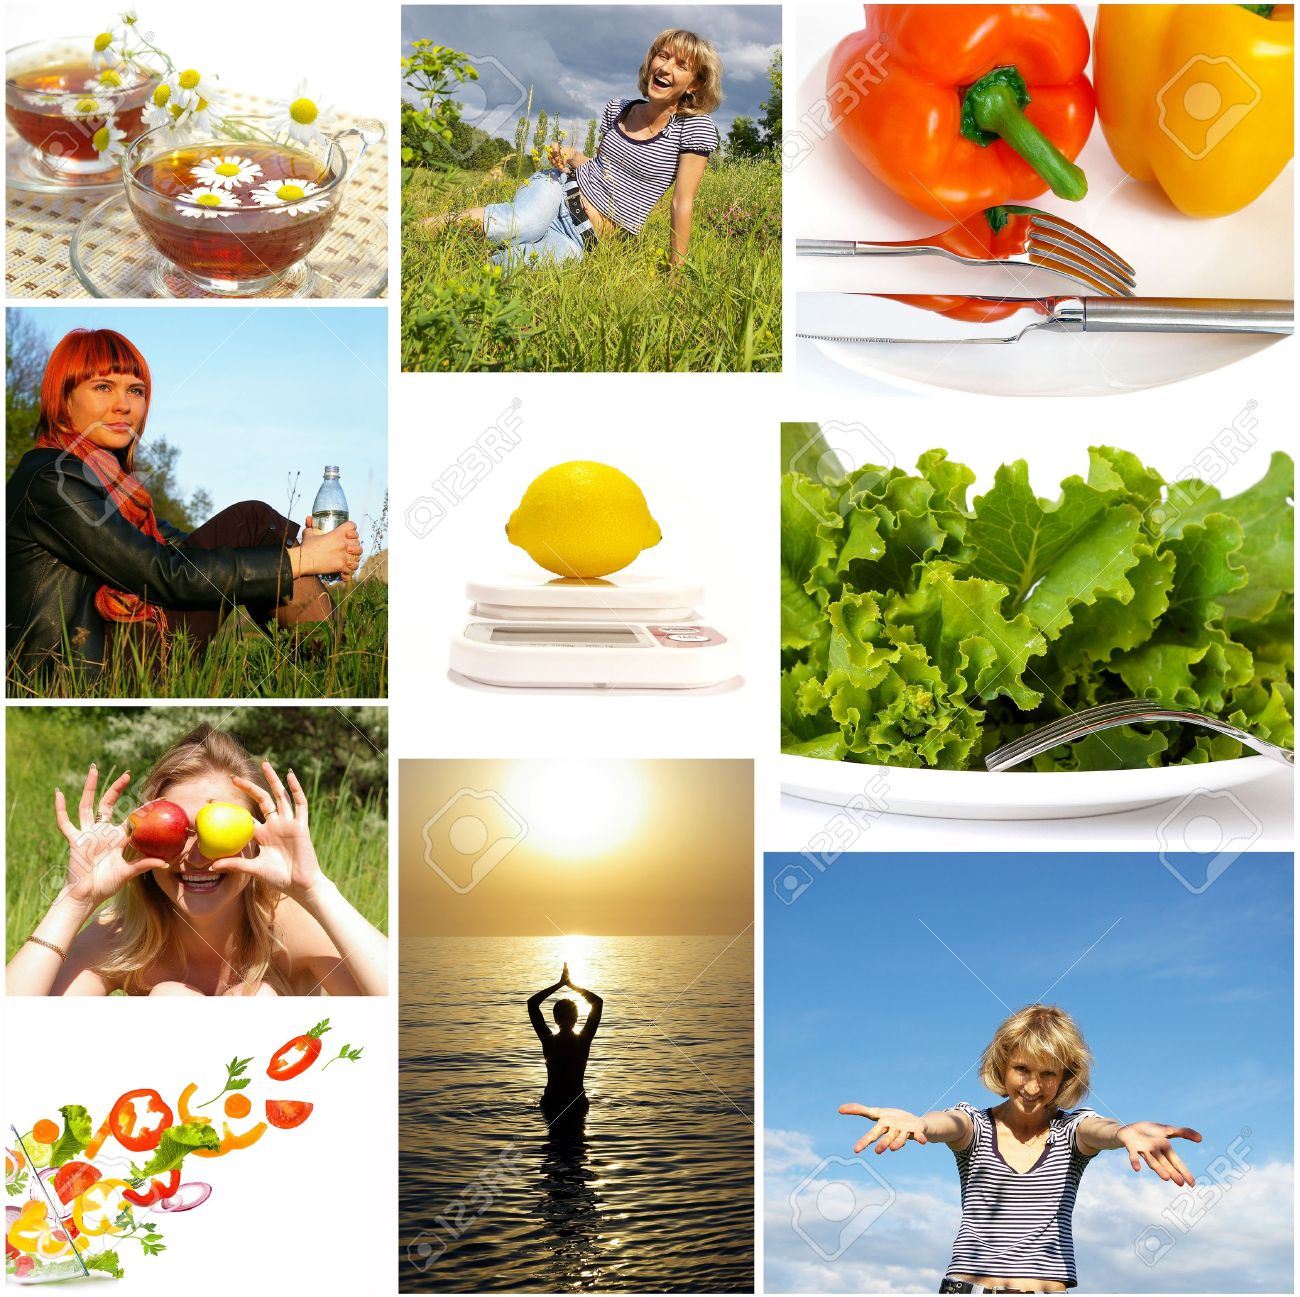 Healthy lifestyle. Healthy nutrition and fitness concept Stock Photo - 3968480